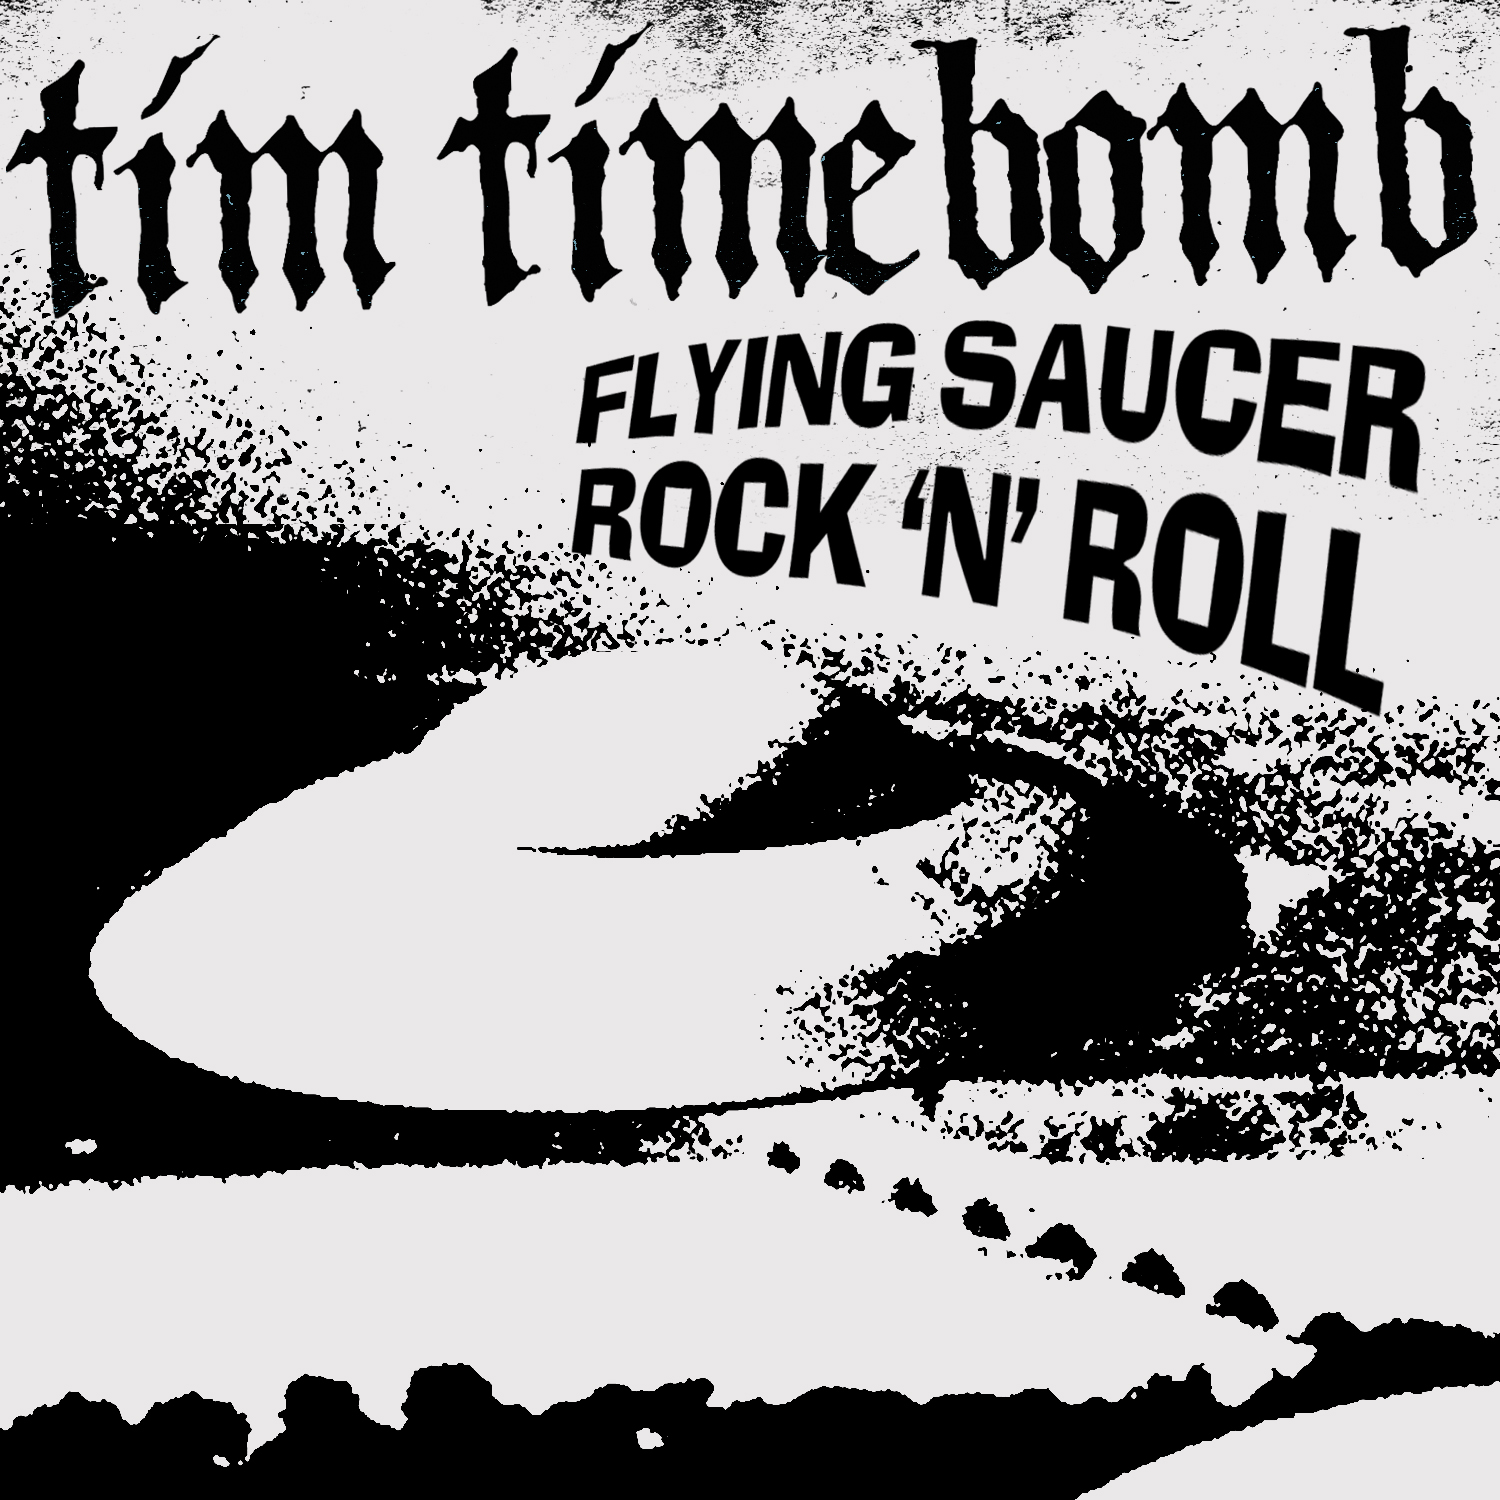 ___FLYING SAUCER ROCK